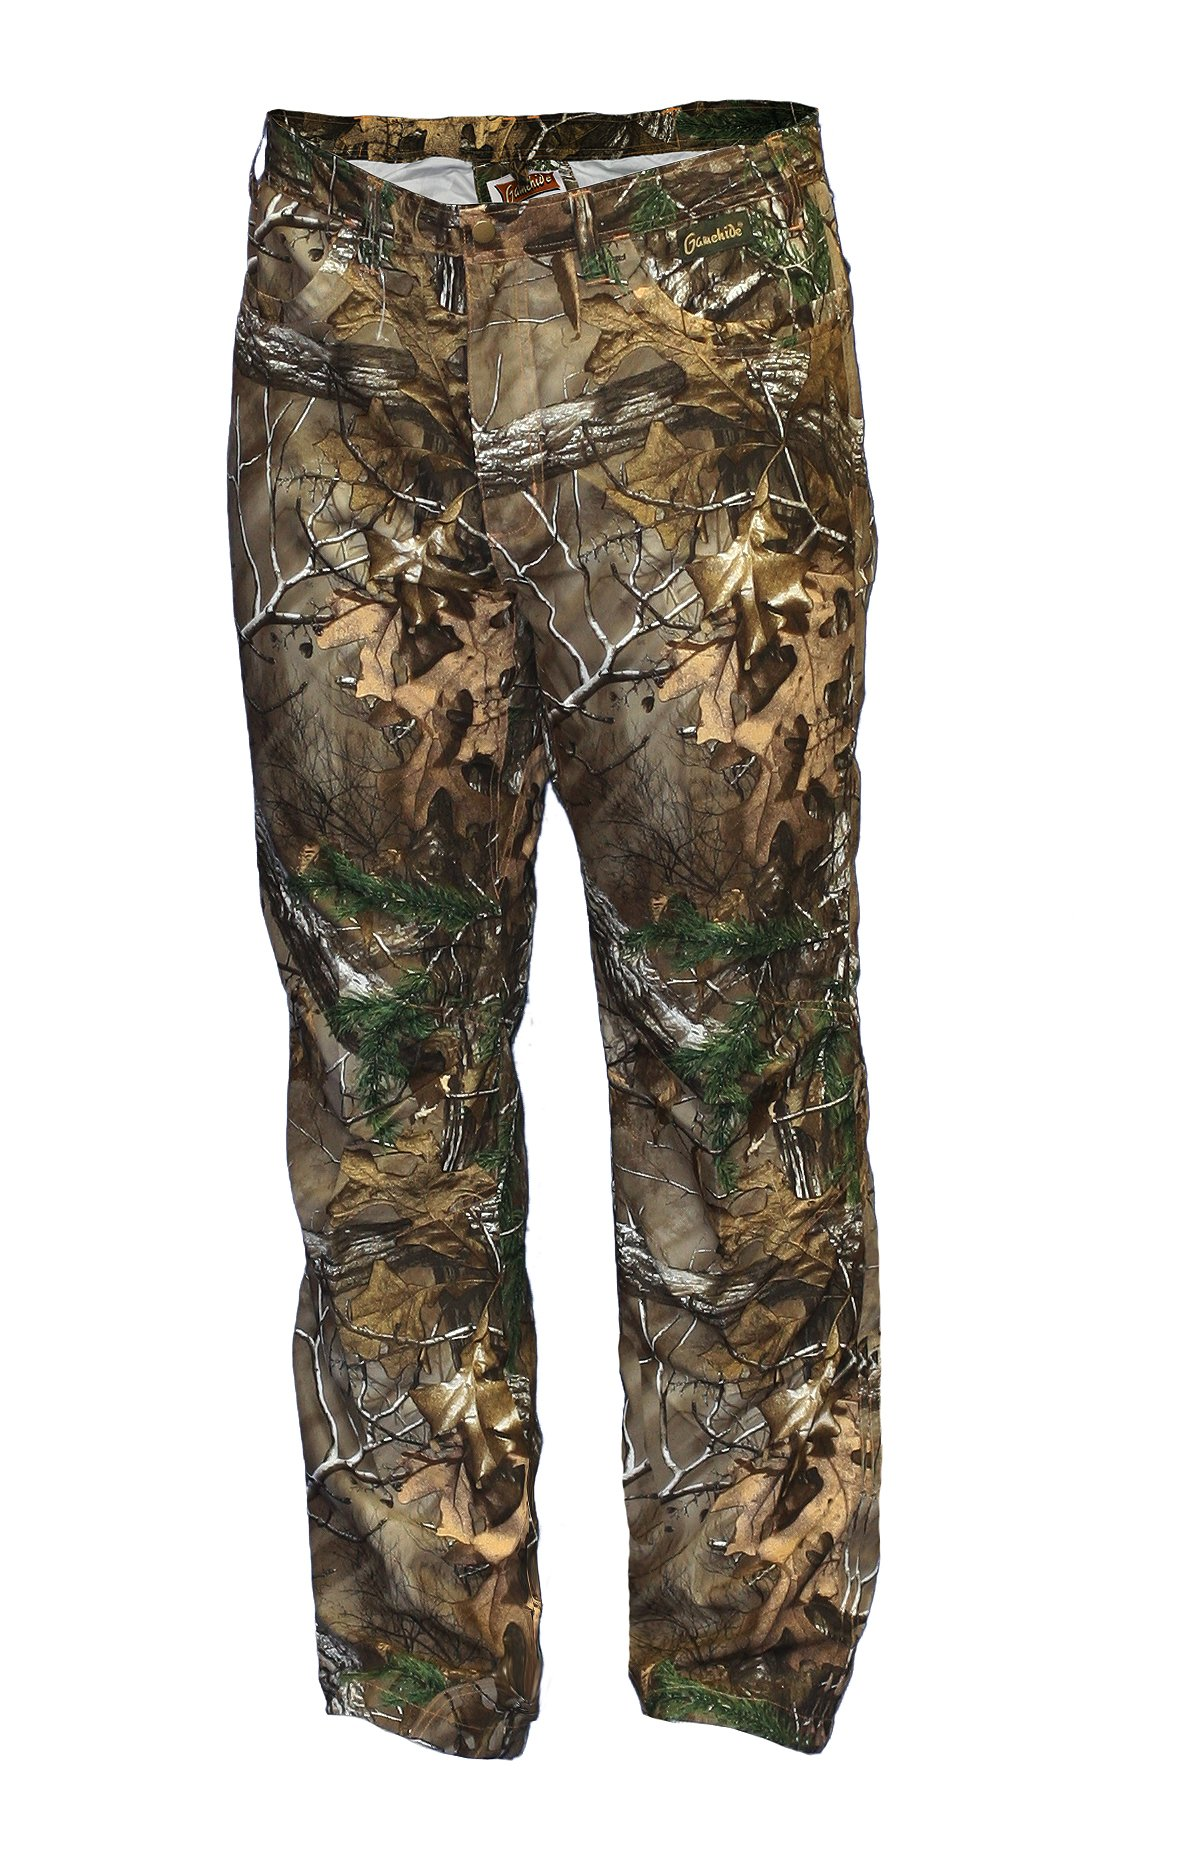 Gamehide Elimitick Ultra-lite Field Pant (Realtree Xtra, Large)